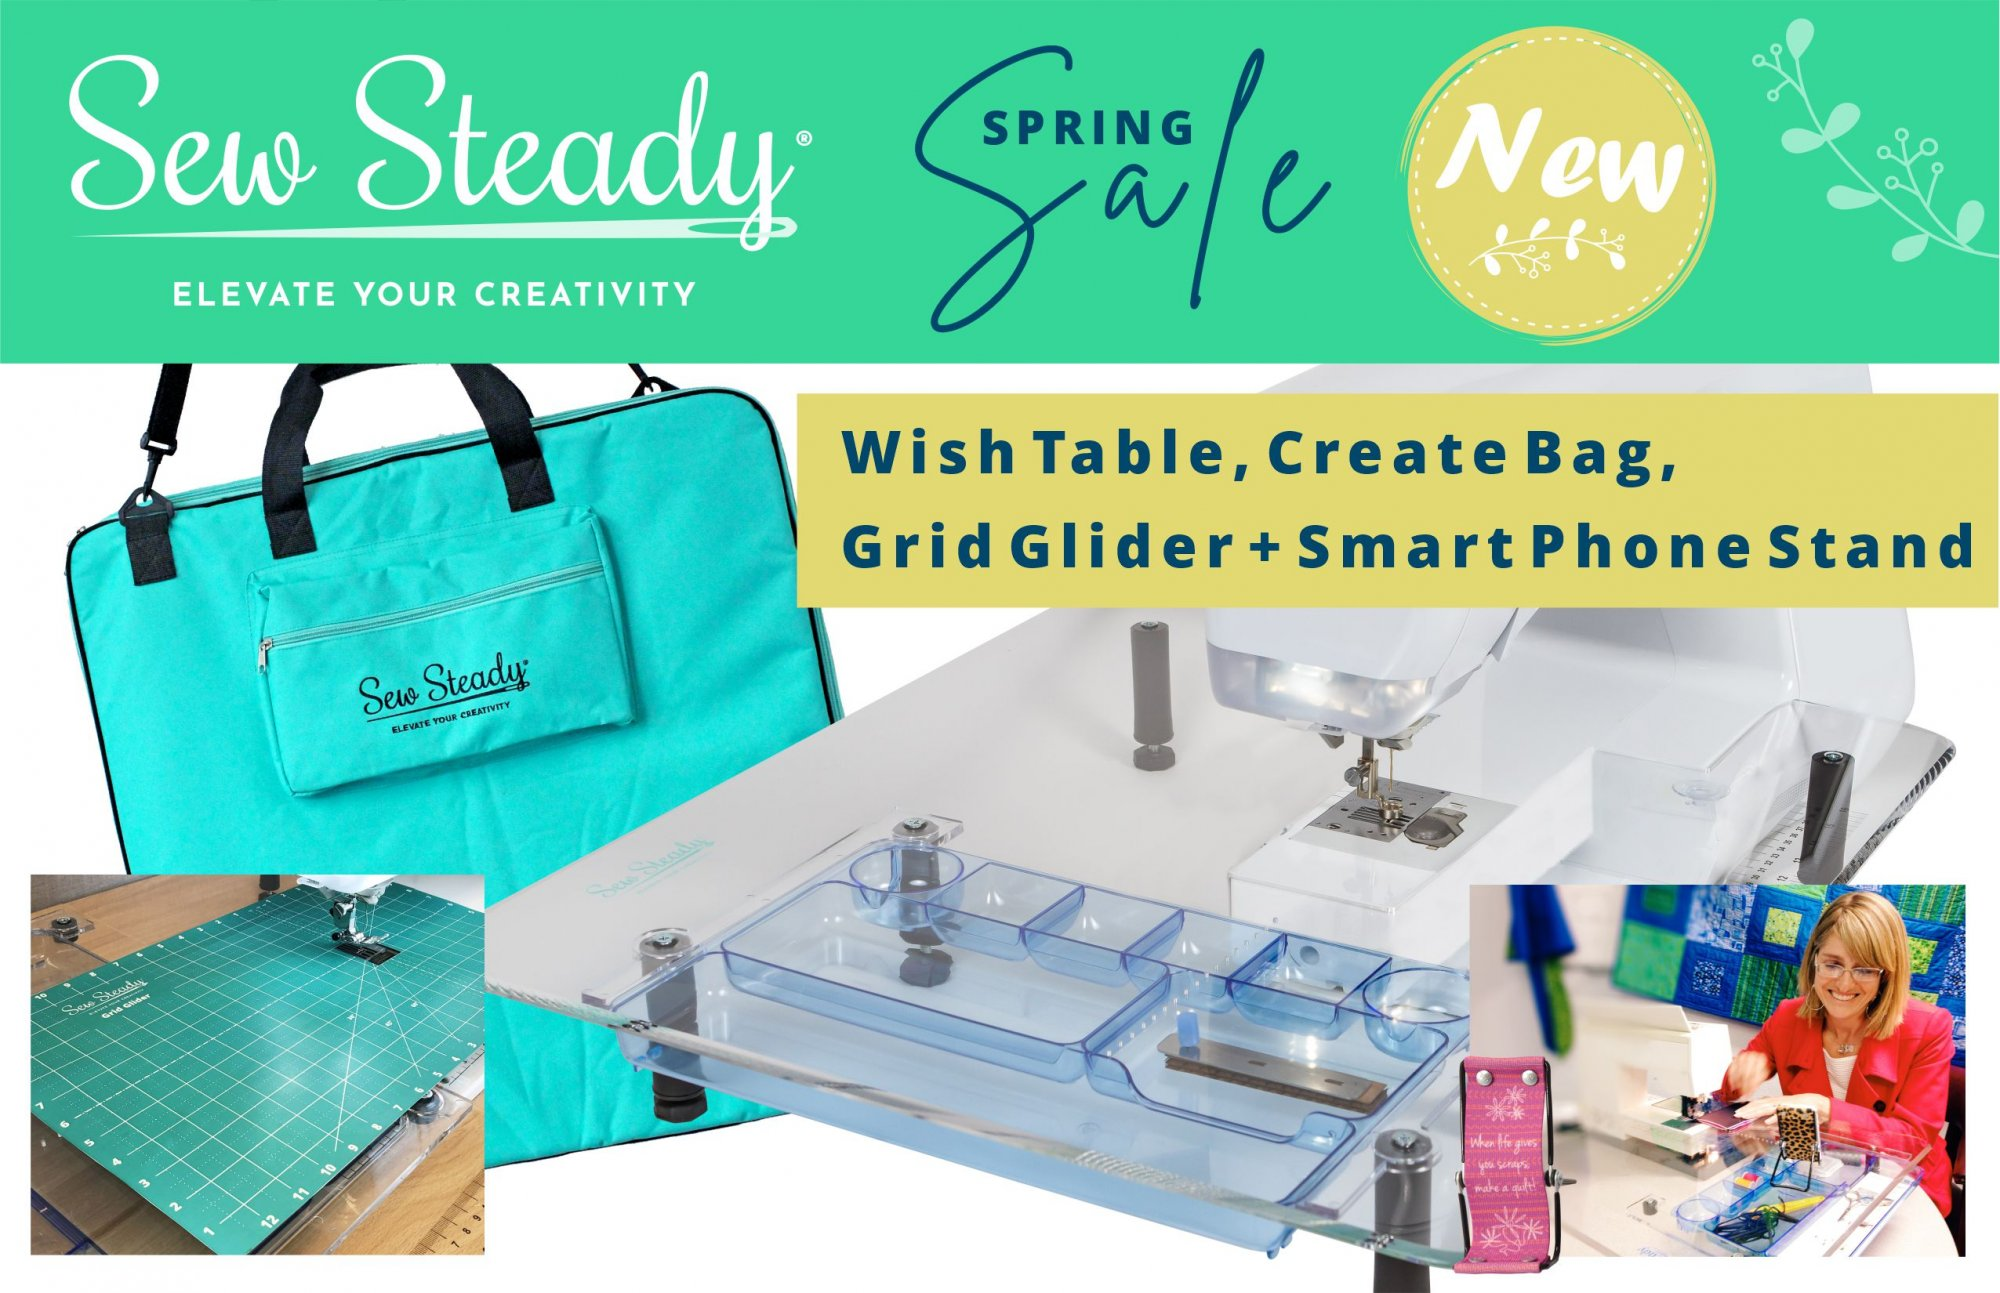 Sew Steady Spring Wish Table Package